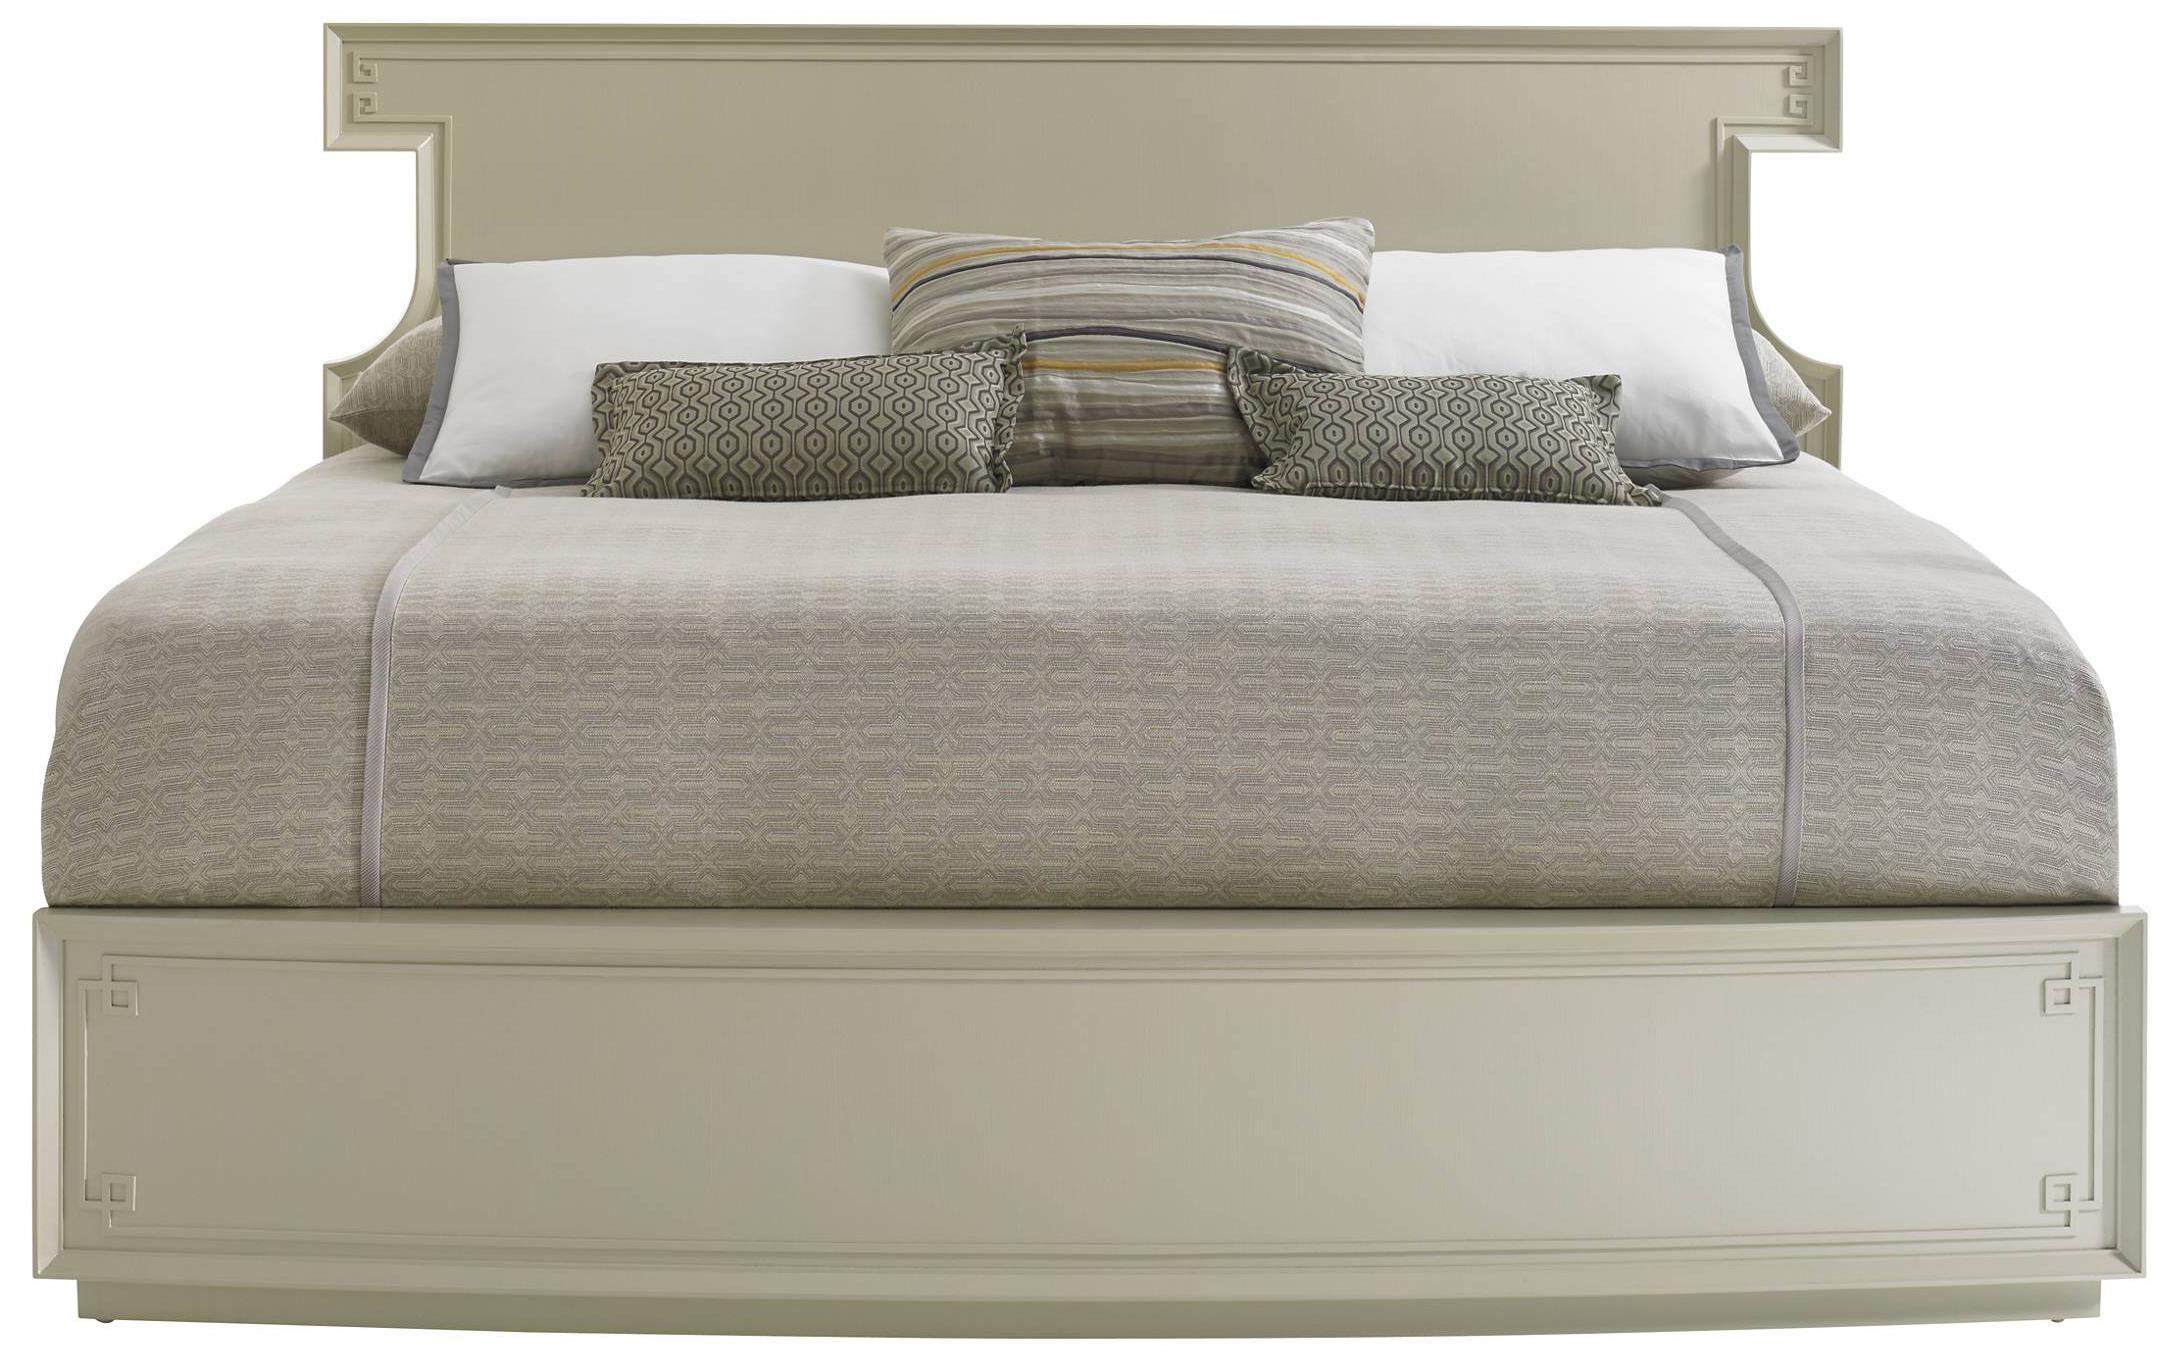 Stanley Furniture Crestaire Queen Southridge Bed - Item Number: 436-23-40